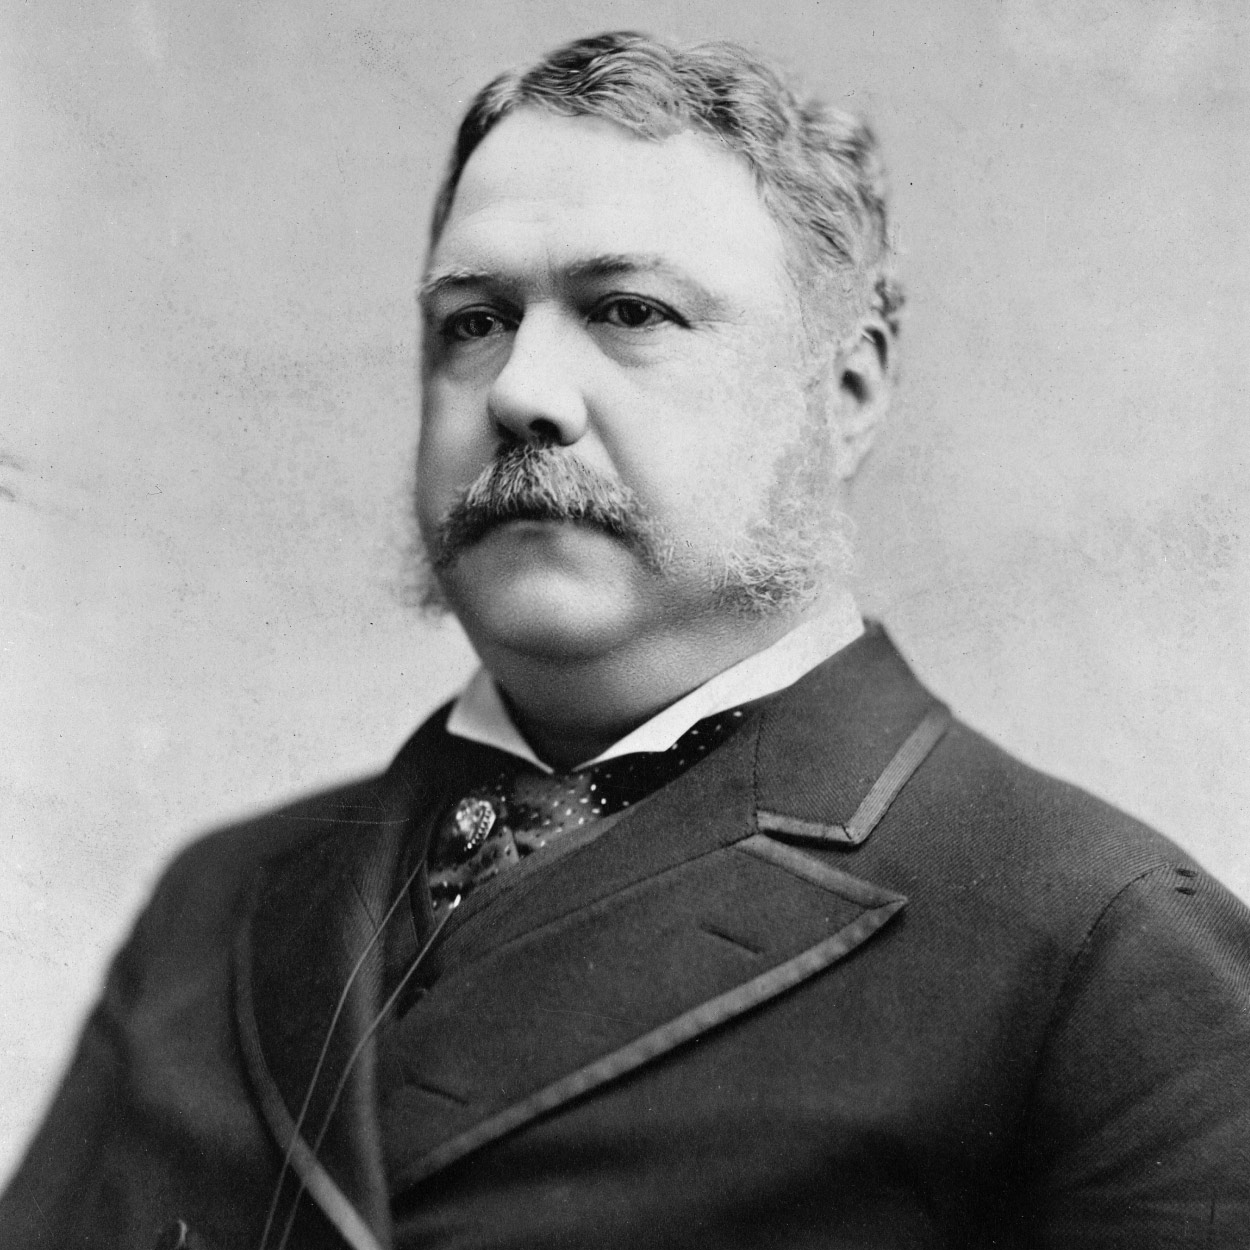 Portrait of Chester A. Arthur the 21st President of the United States